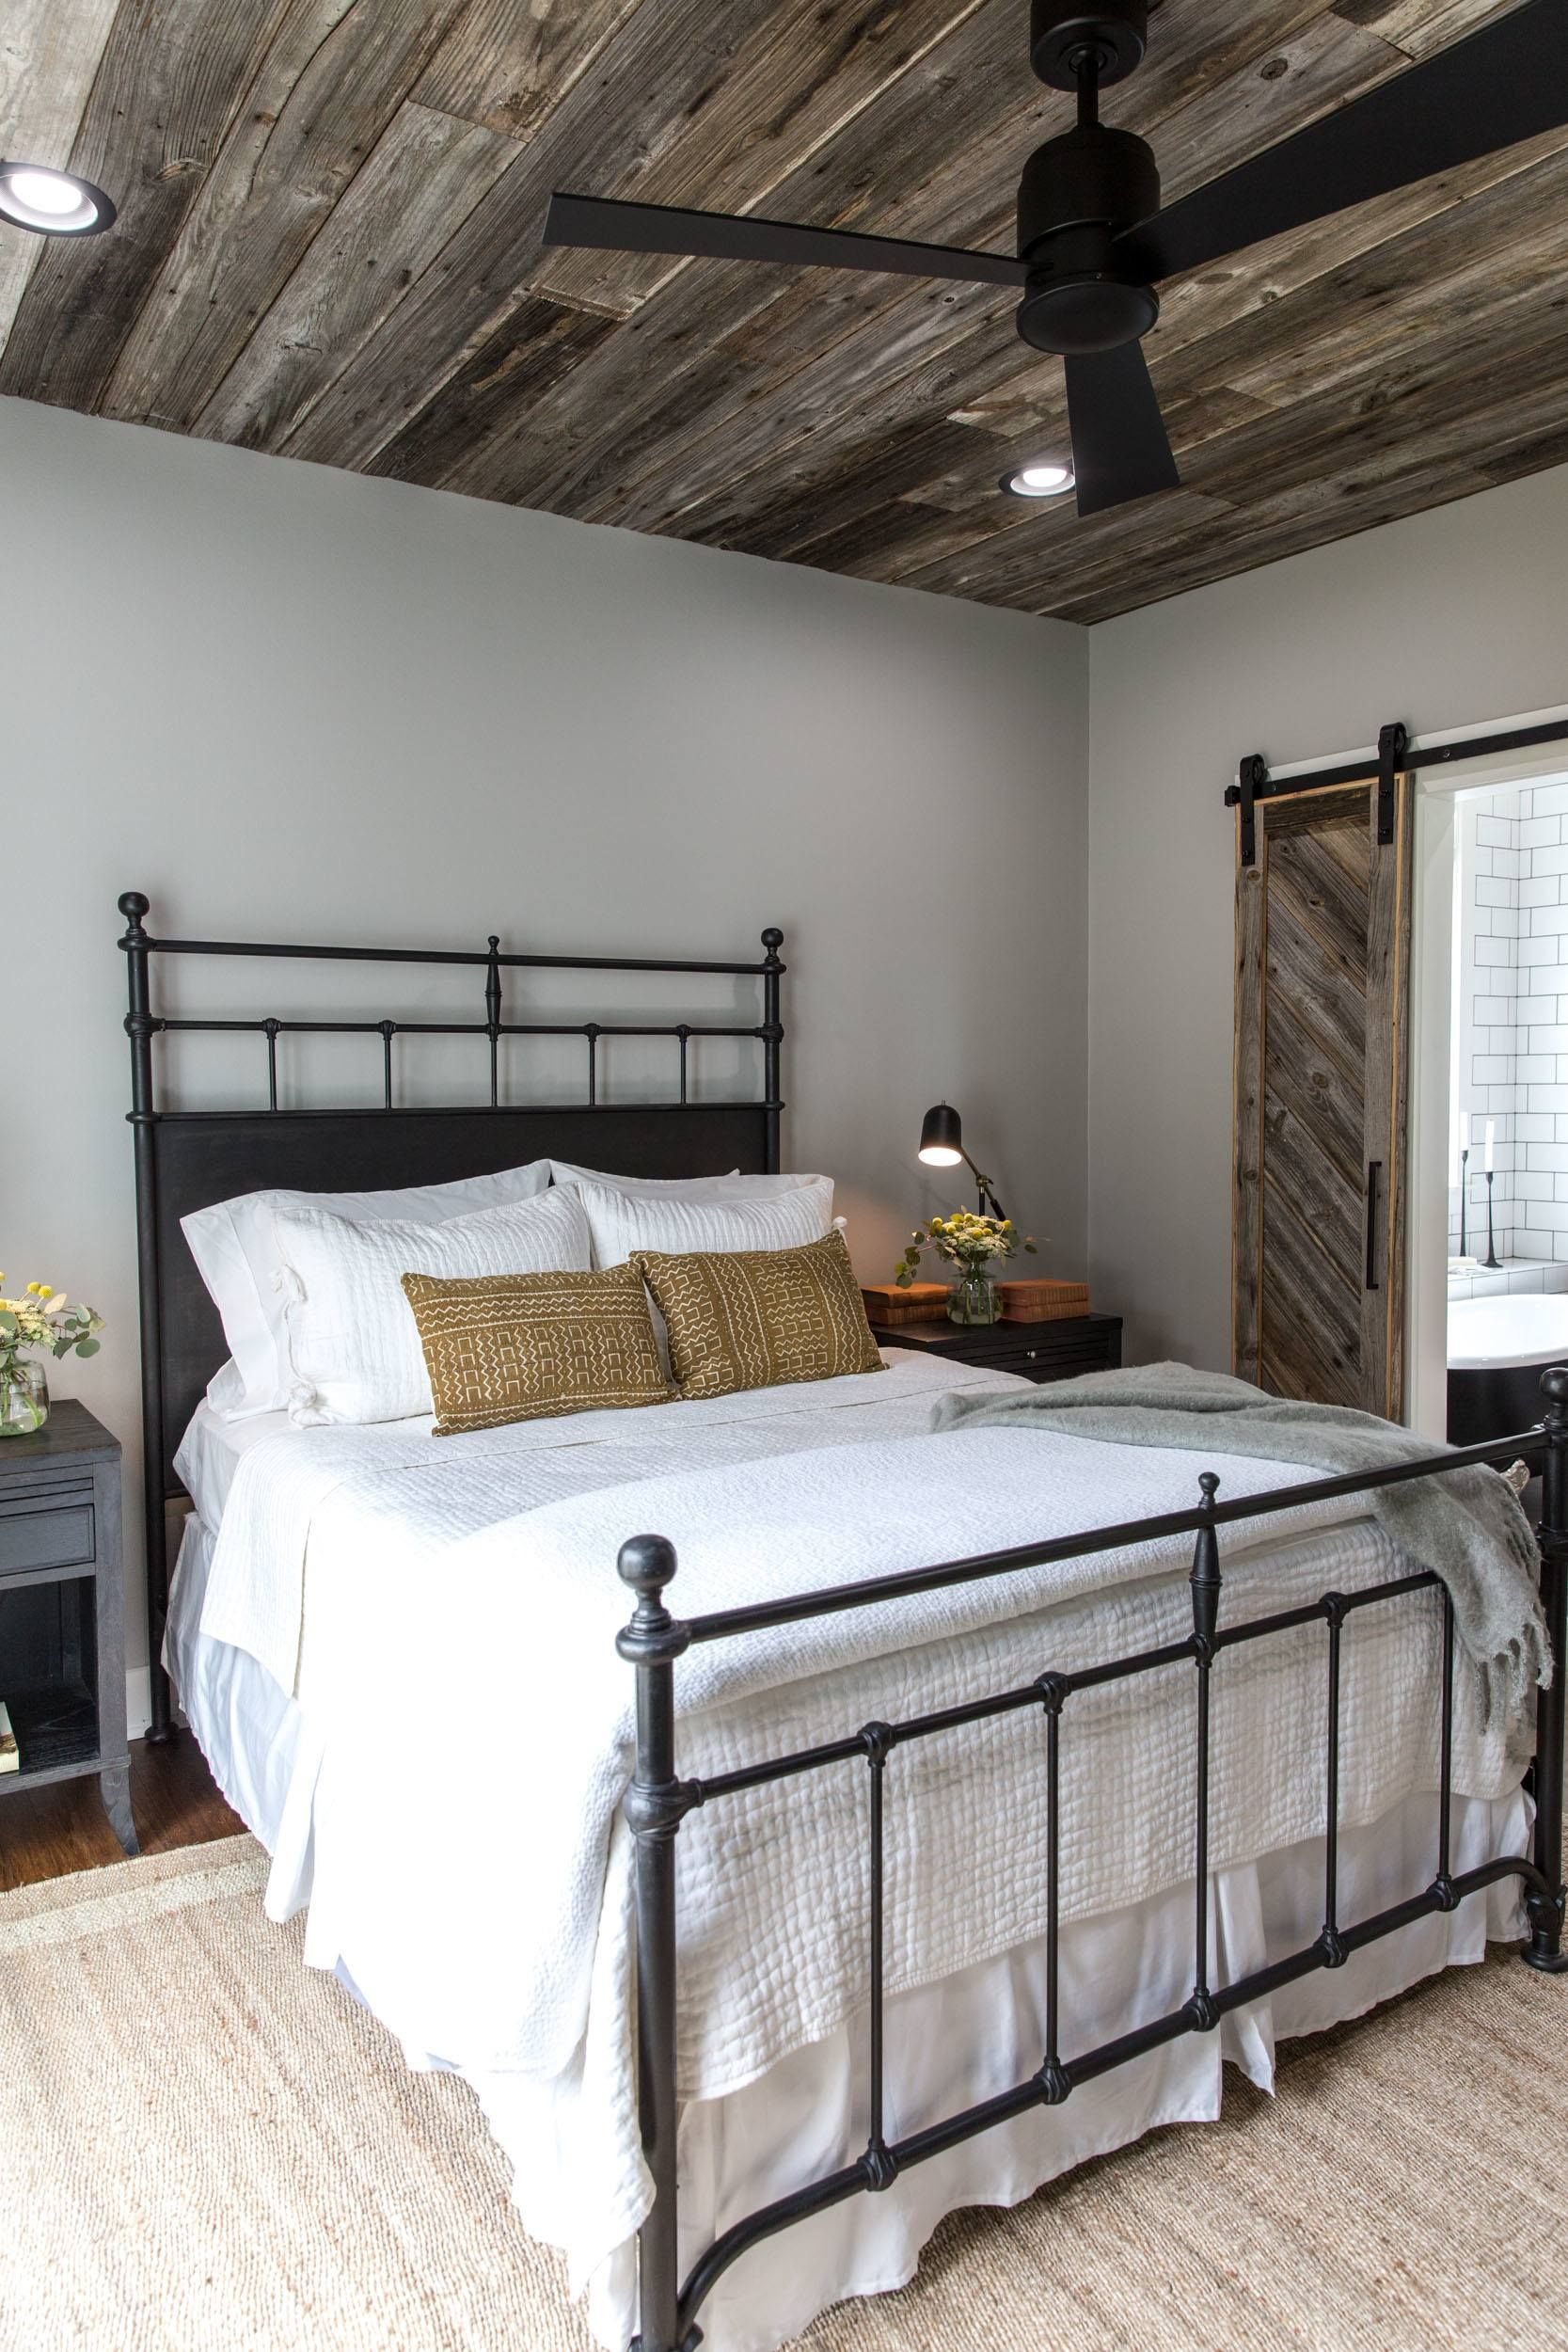 Joanna gaines master bedroom bedding  Episode   The Little Shack On The Prairie  Joanna gaines Master